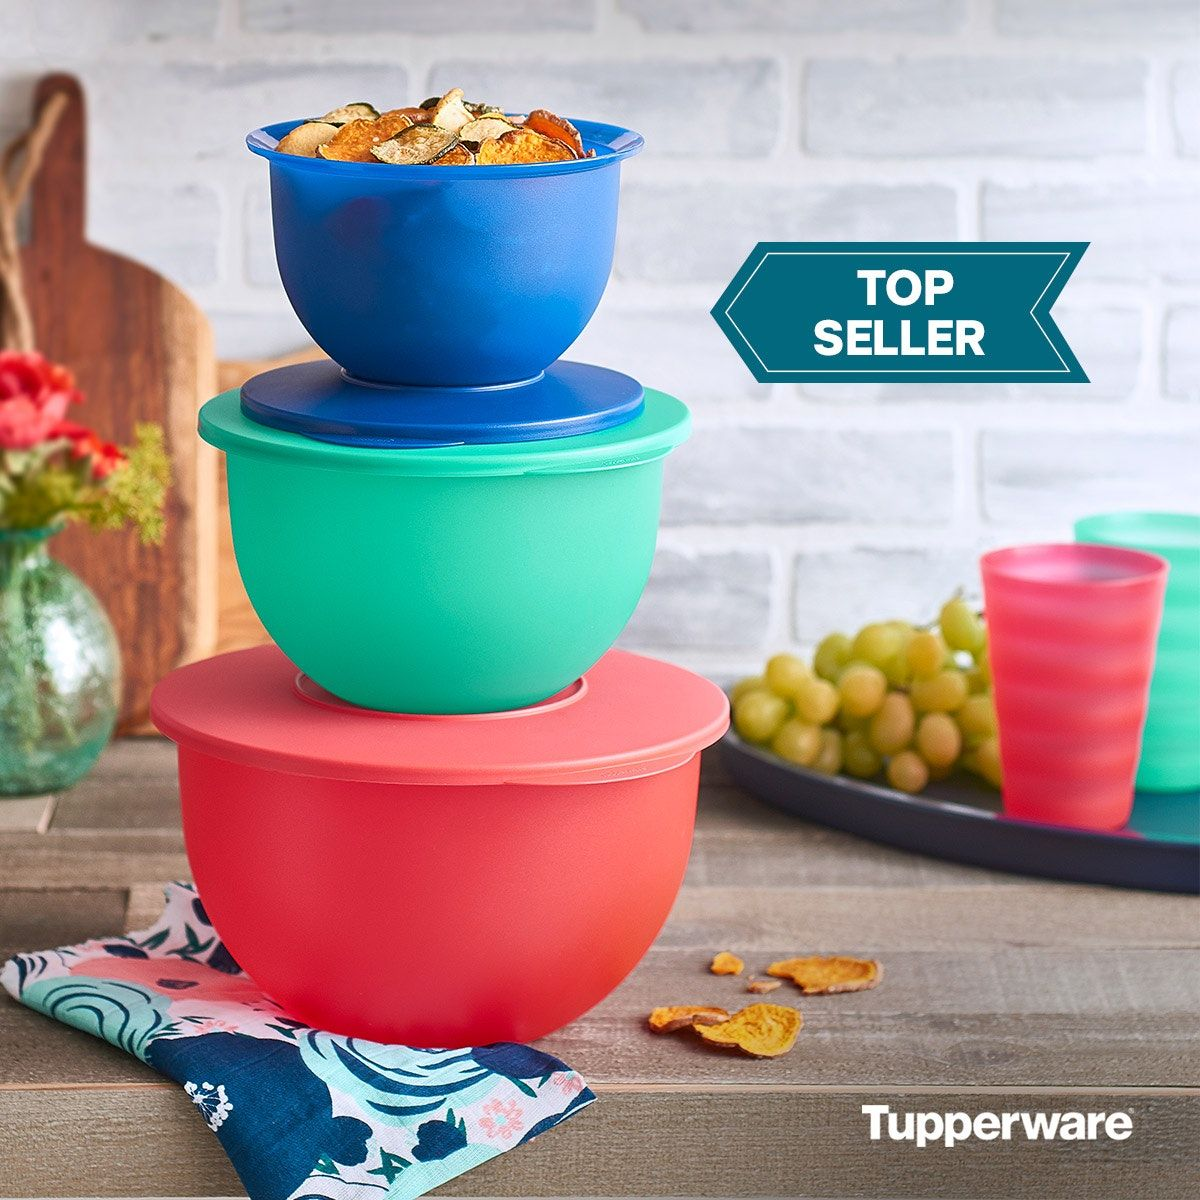 Tupperware Impressions Classic Bowl Set In 2020 Tupperware Bowl Classic Bowls